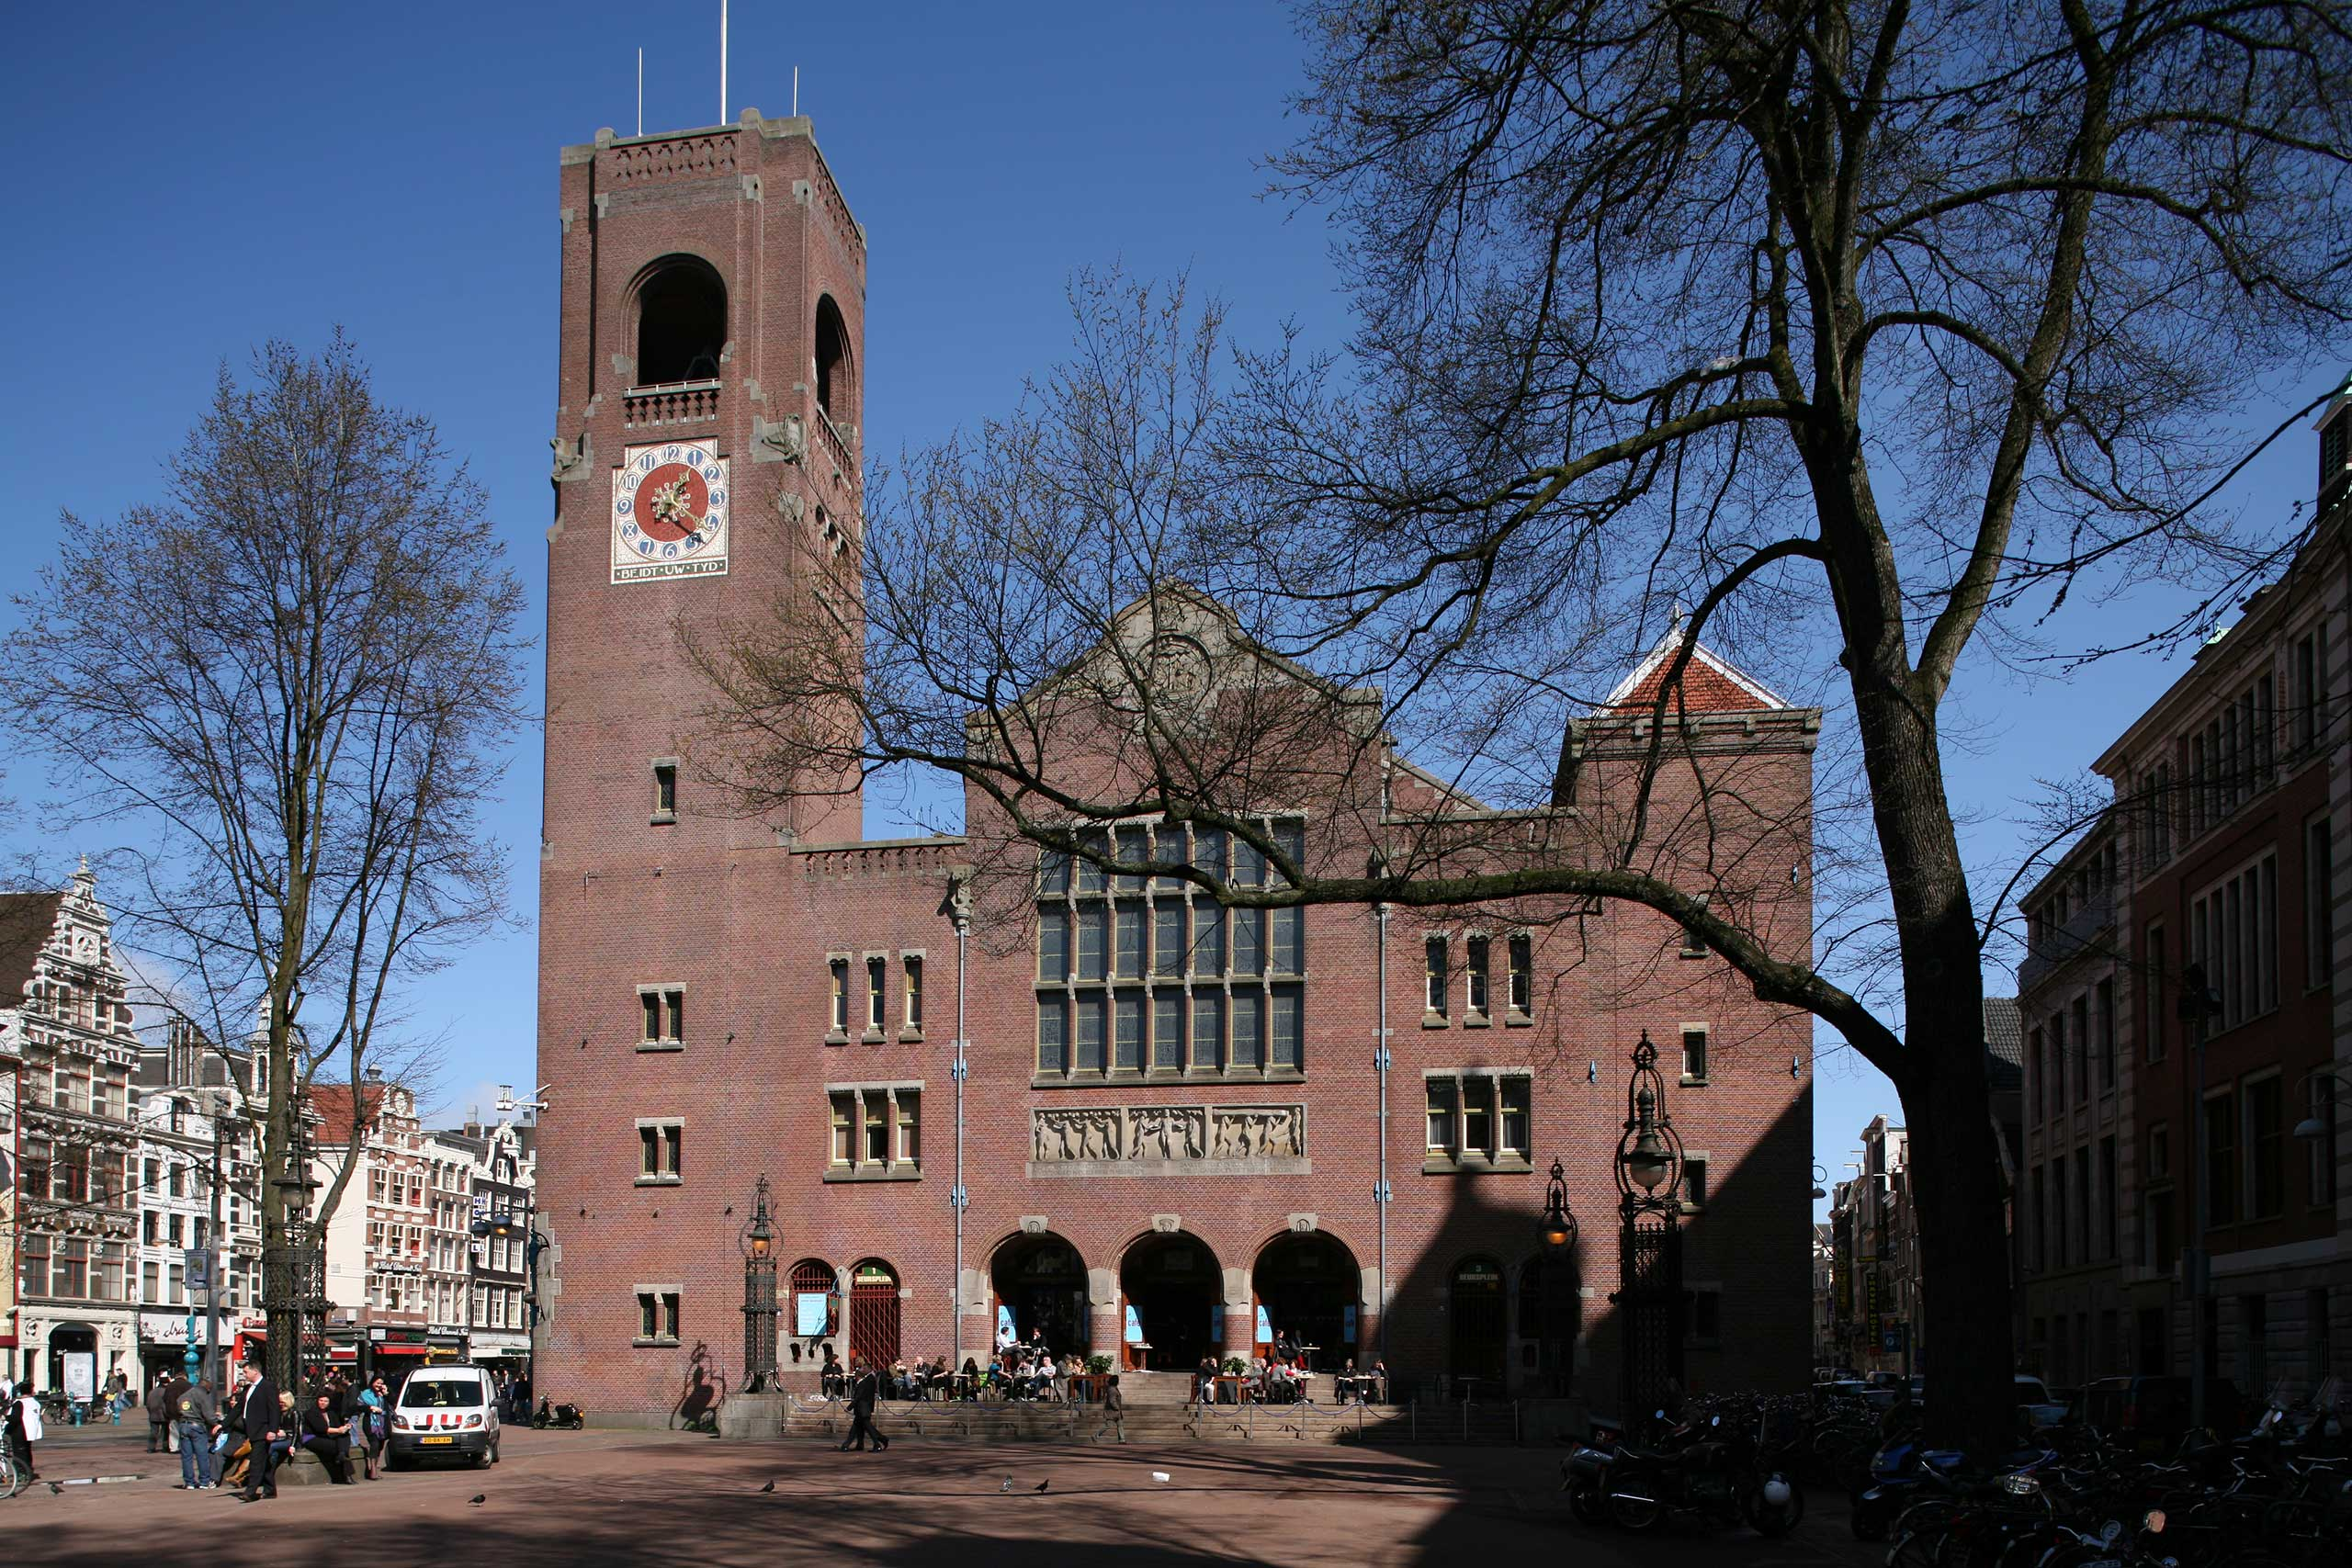 The Beurs van Berlage, built by Dutch architect and urban designer Hendrik Pieter Berlage, once housed the Amsterdam Stock Exchange. The prominent bell tower carried the 'Beursbengel', the exchange bell. Its destination changed to being a 'public palace' in 1985.